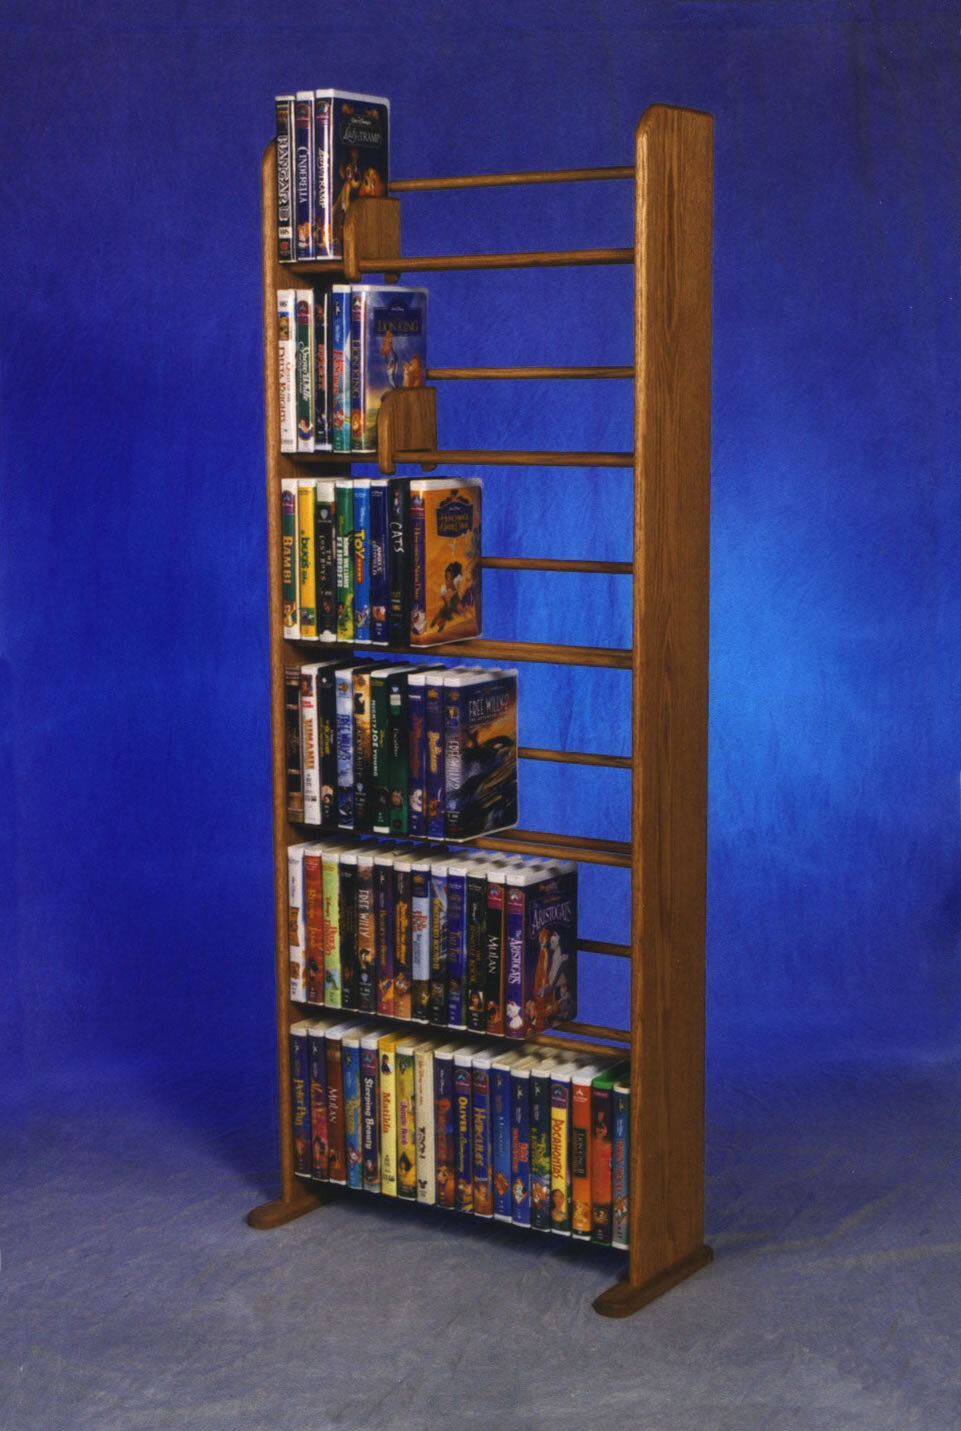 Wood Shed Delux VHS Dowel Multimedia Storage Rack | Wayfair